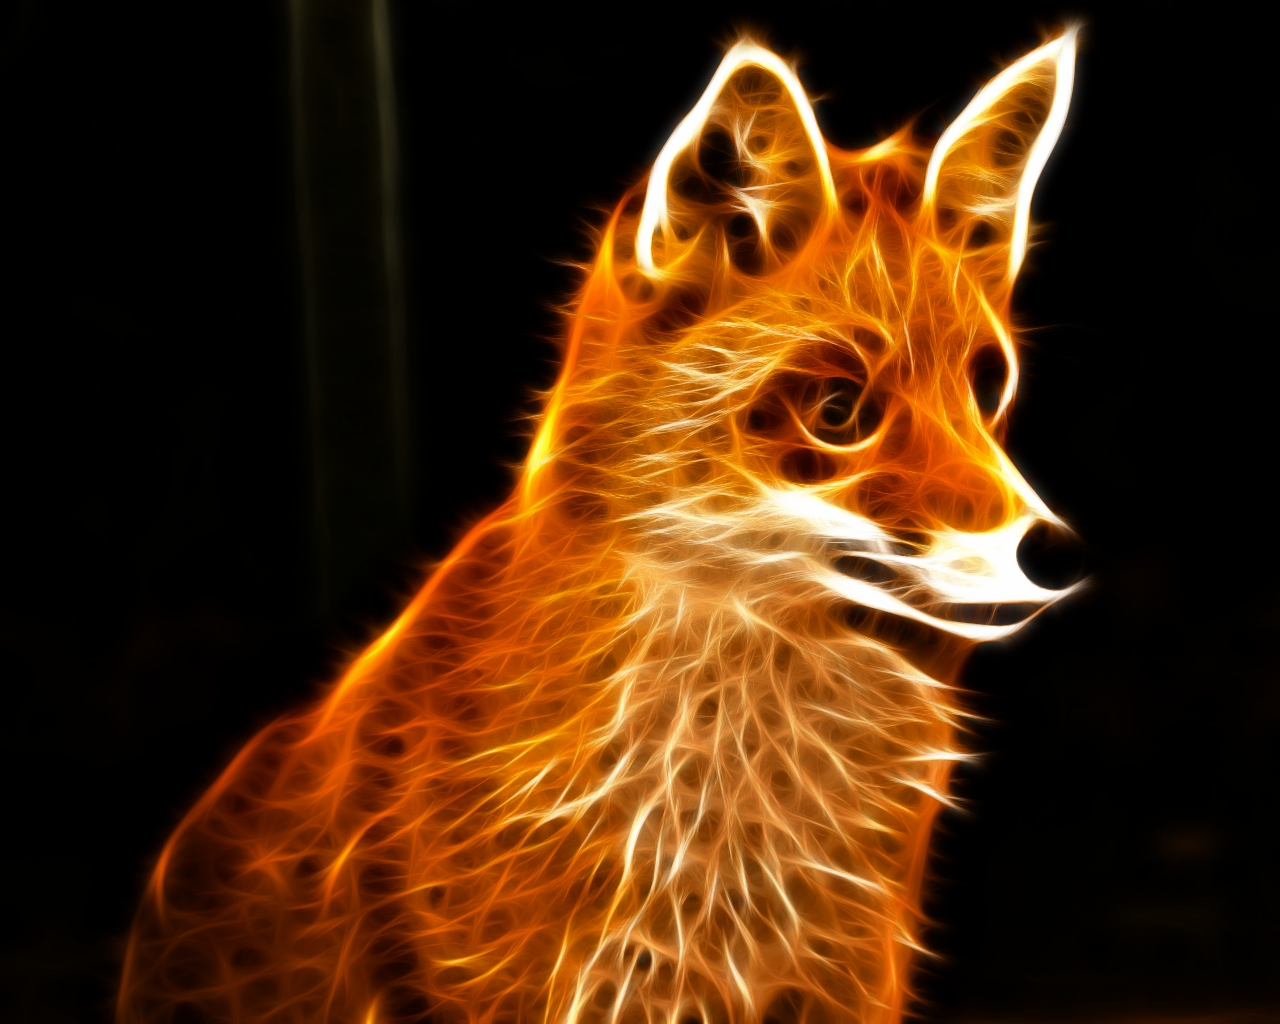 Fox wallpapers wallpapers high quality download free - 3d animal wallpaper ...